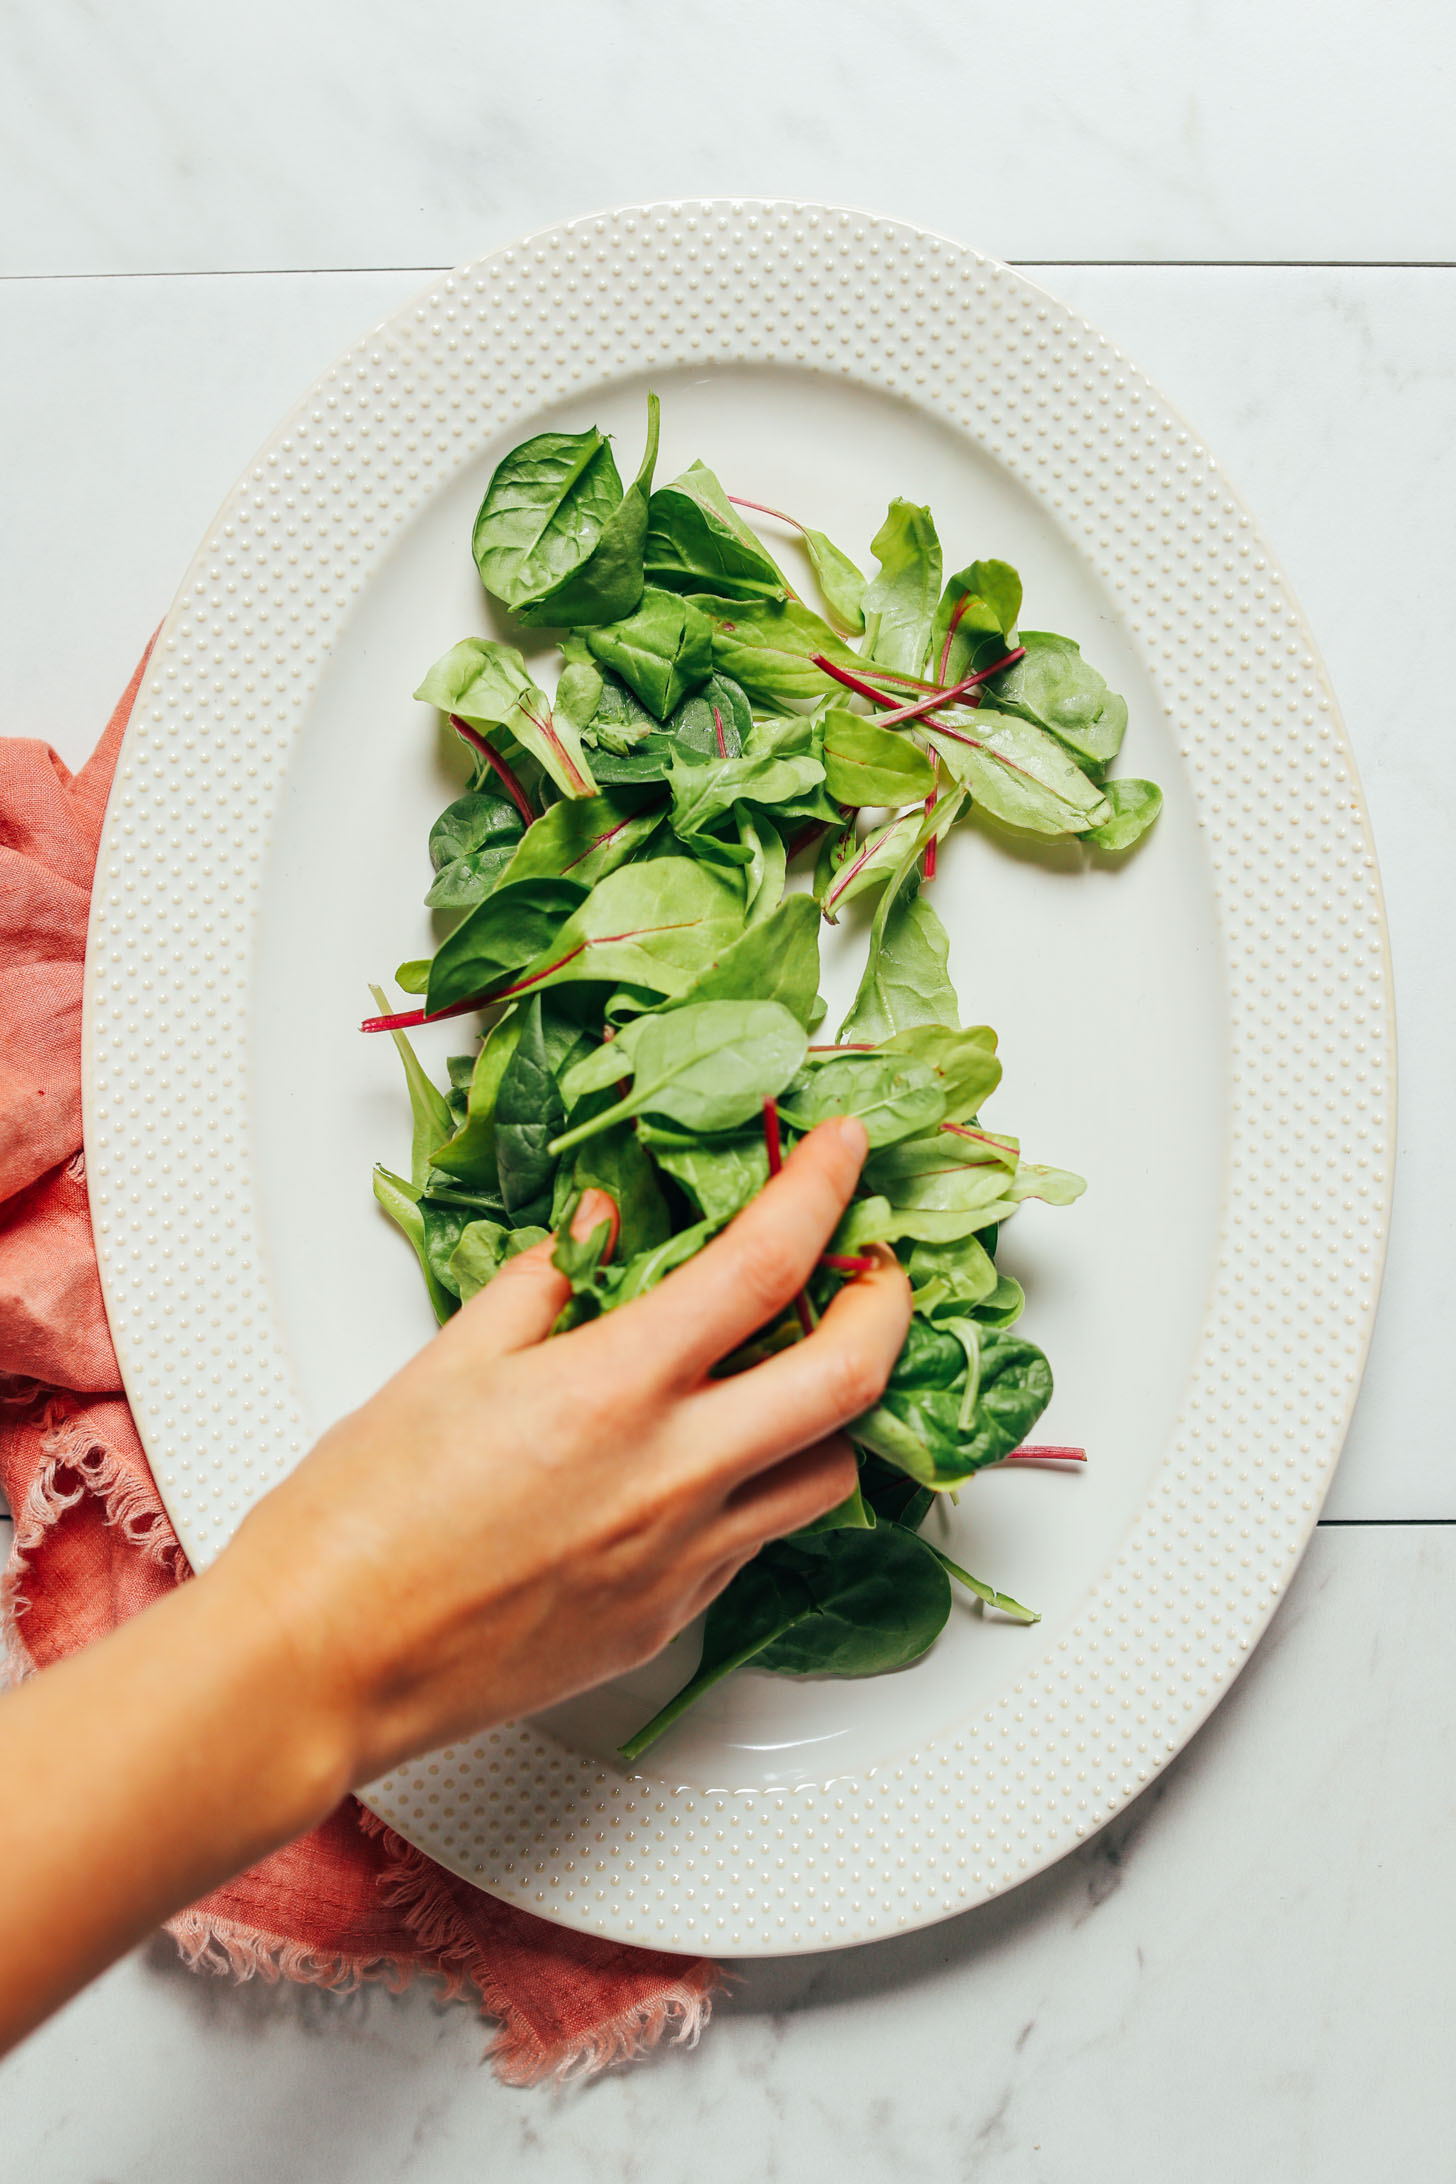 Overhead image of a white platter pink towel and greens being placed on the plate by hand